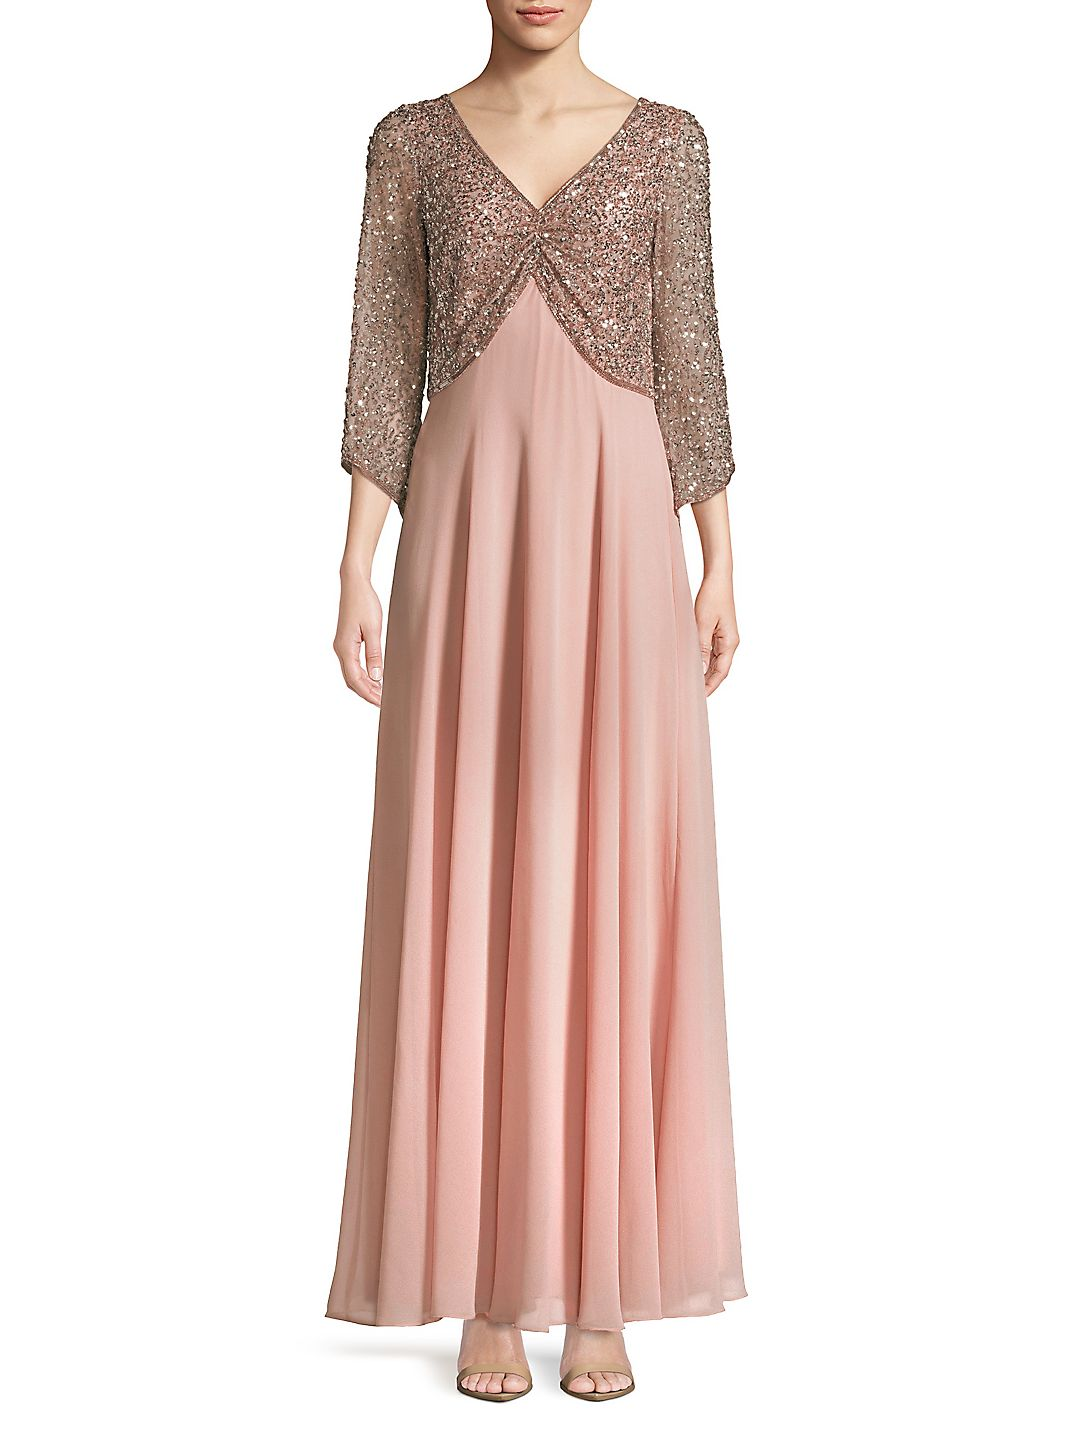 Plus Bea Blush Beaded Dress